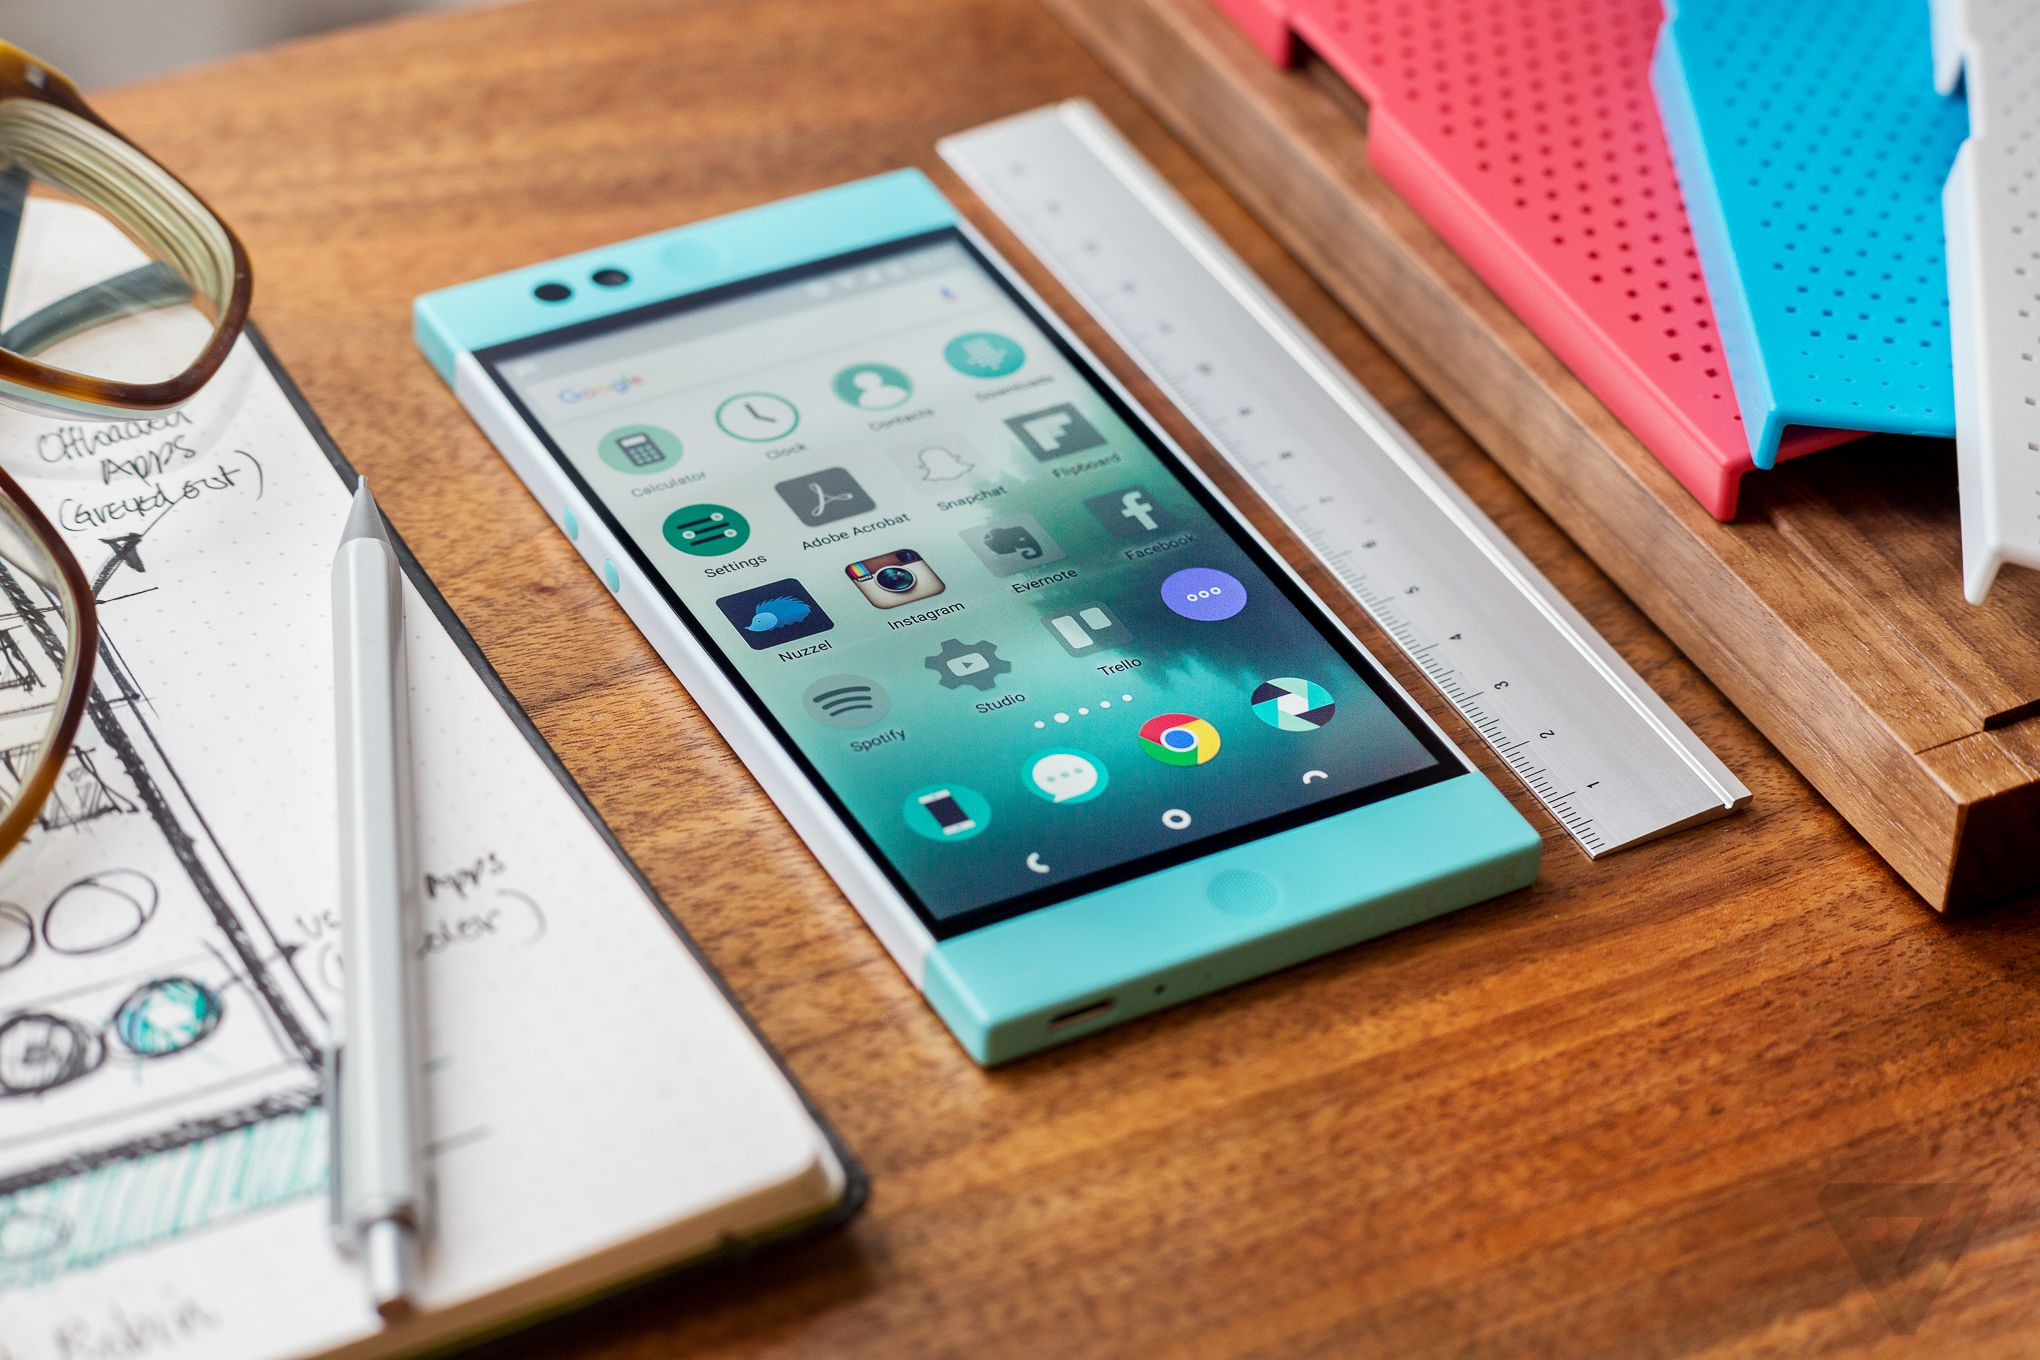 Nextbit Robin review: a smartphone in the clouds | The Verge